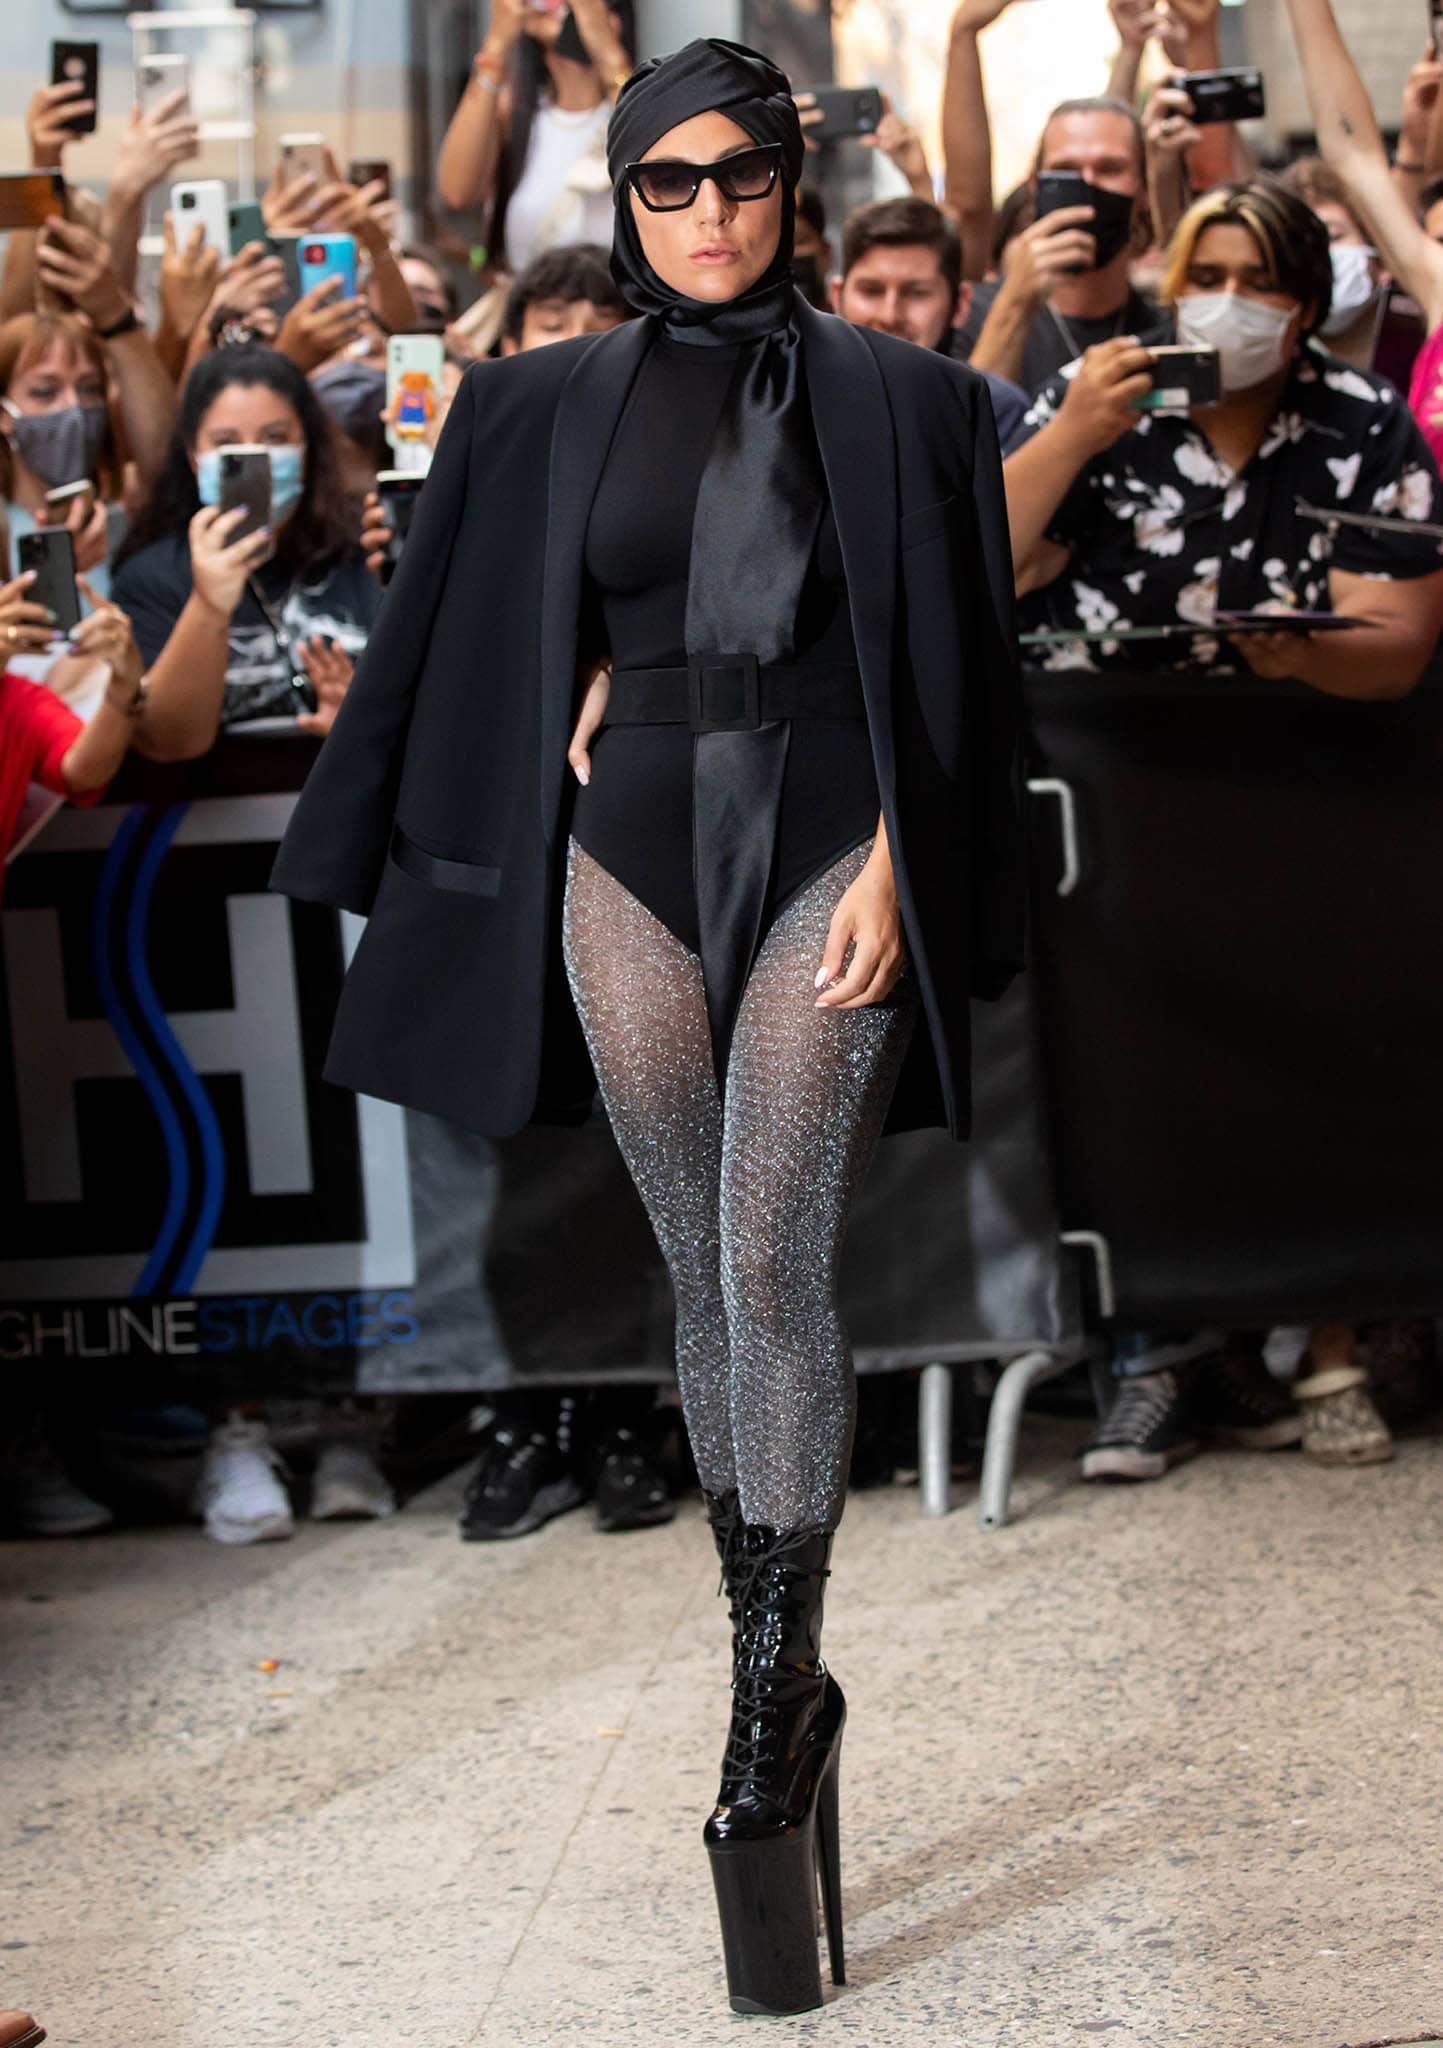 Lady Gaga flaunts her figure in a black bodysuit with Fogal lurex tights and an oversized blazer on July 28, 2021